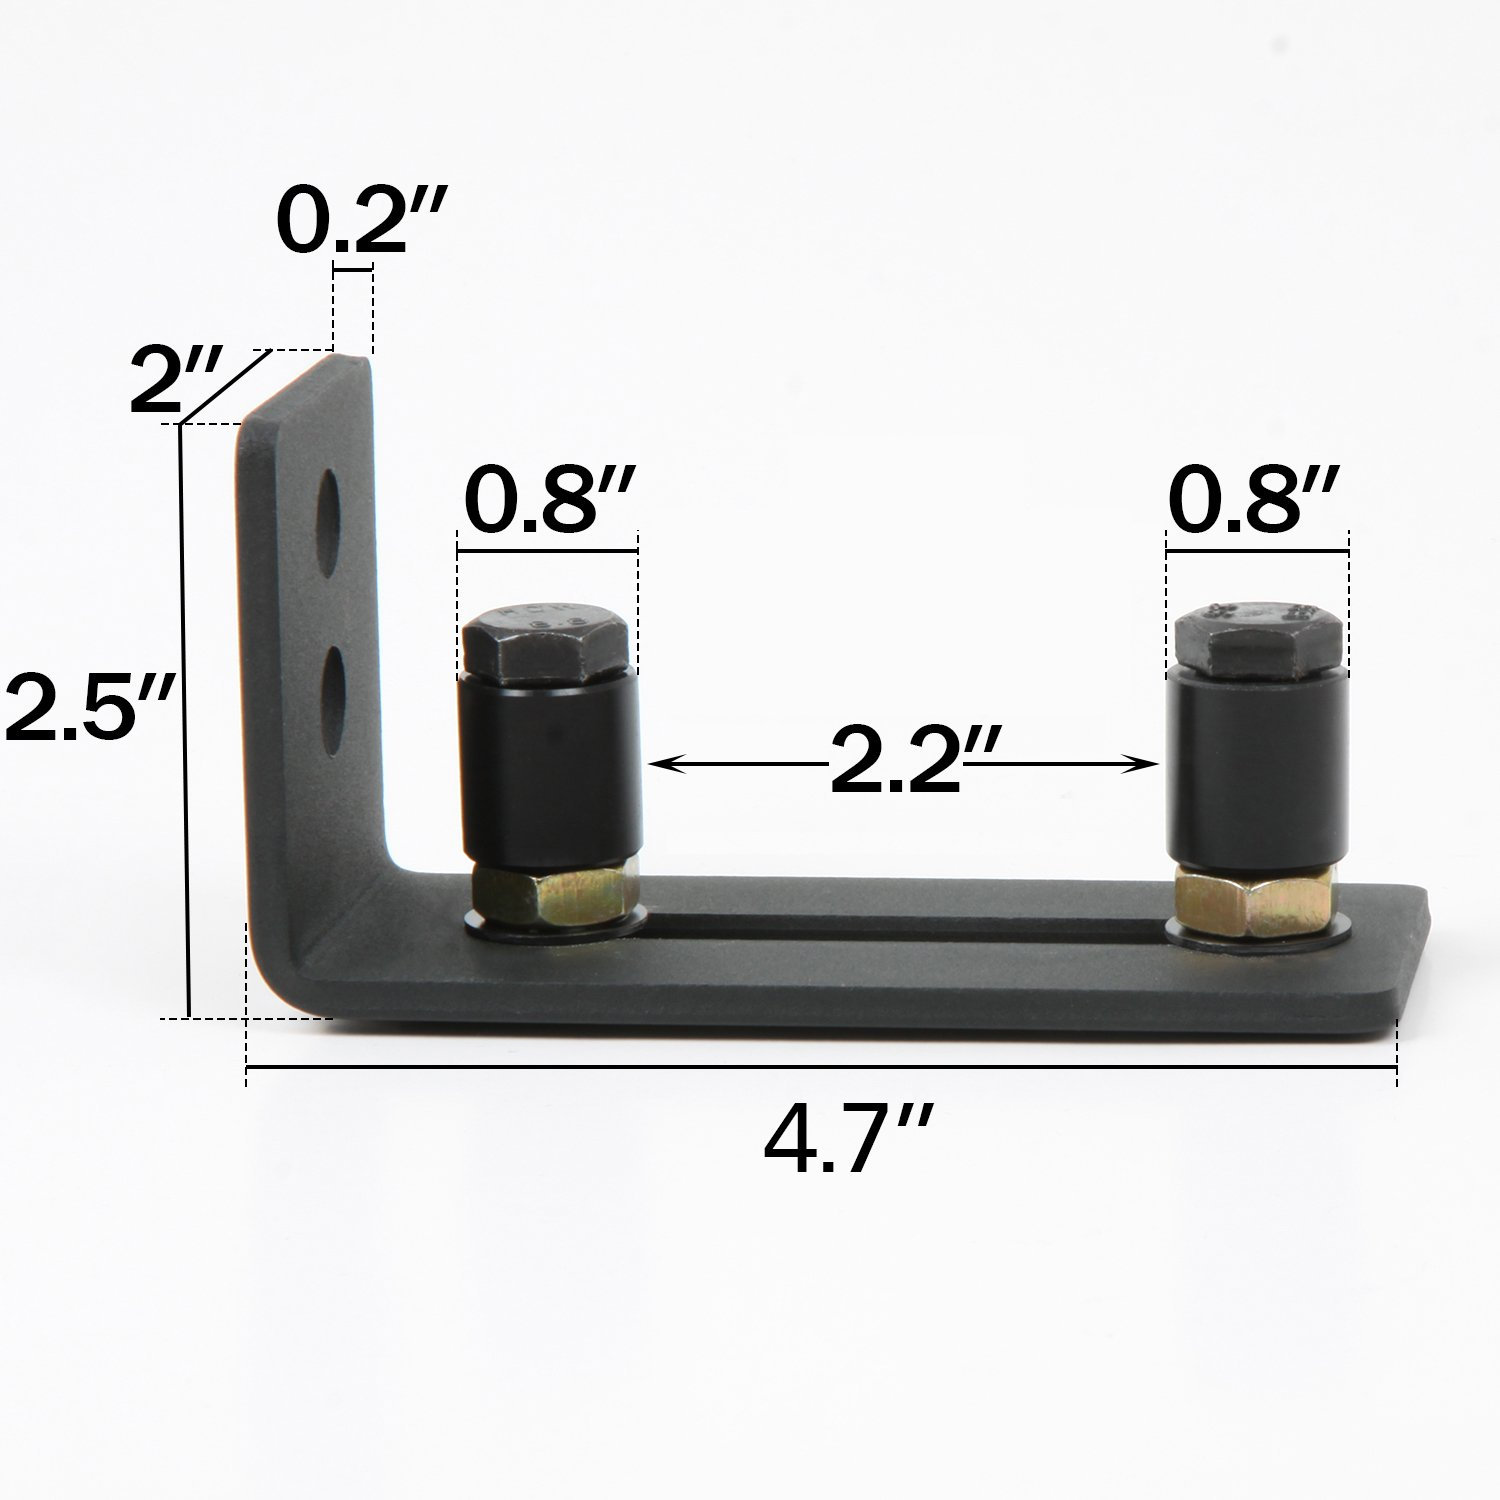 Stay Roller Guide Sliding Barn Door Bottom Guide Adjustable Floor Guide Wall Mounted Hardware with Black Power Coat-Flush to Floor (2 Pack) by NIUBEE (Image #2)